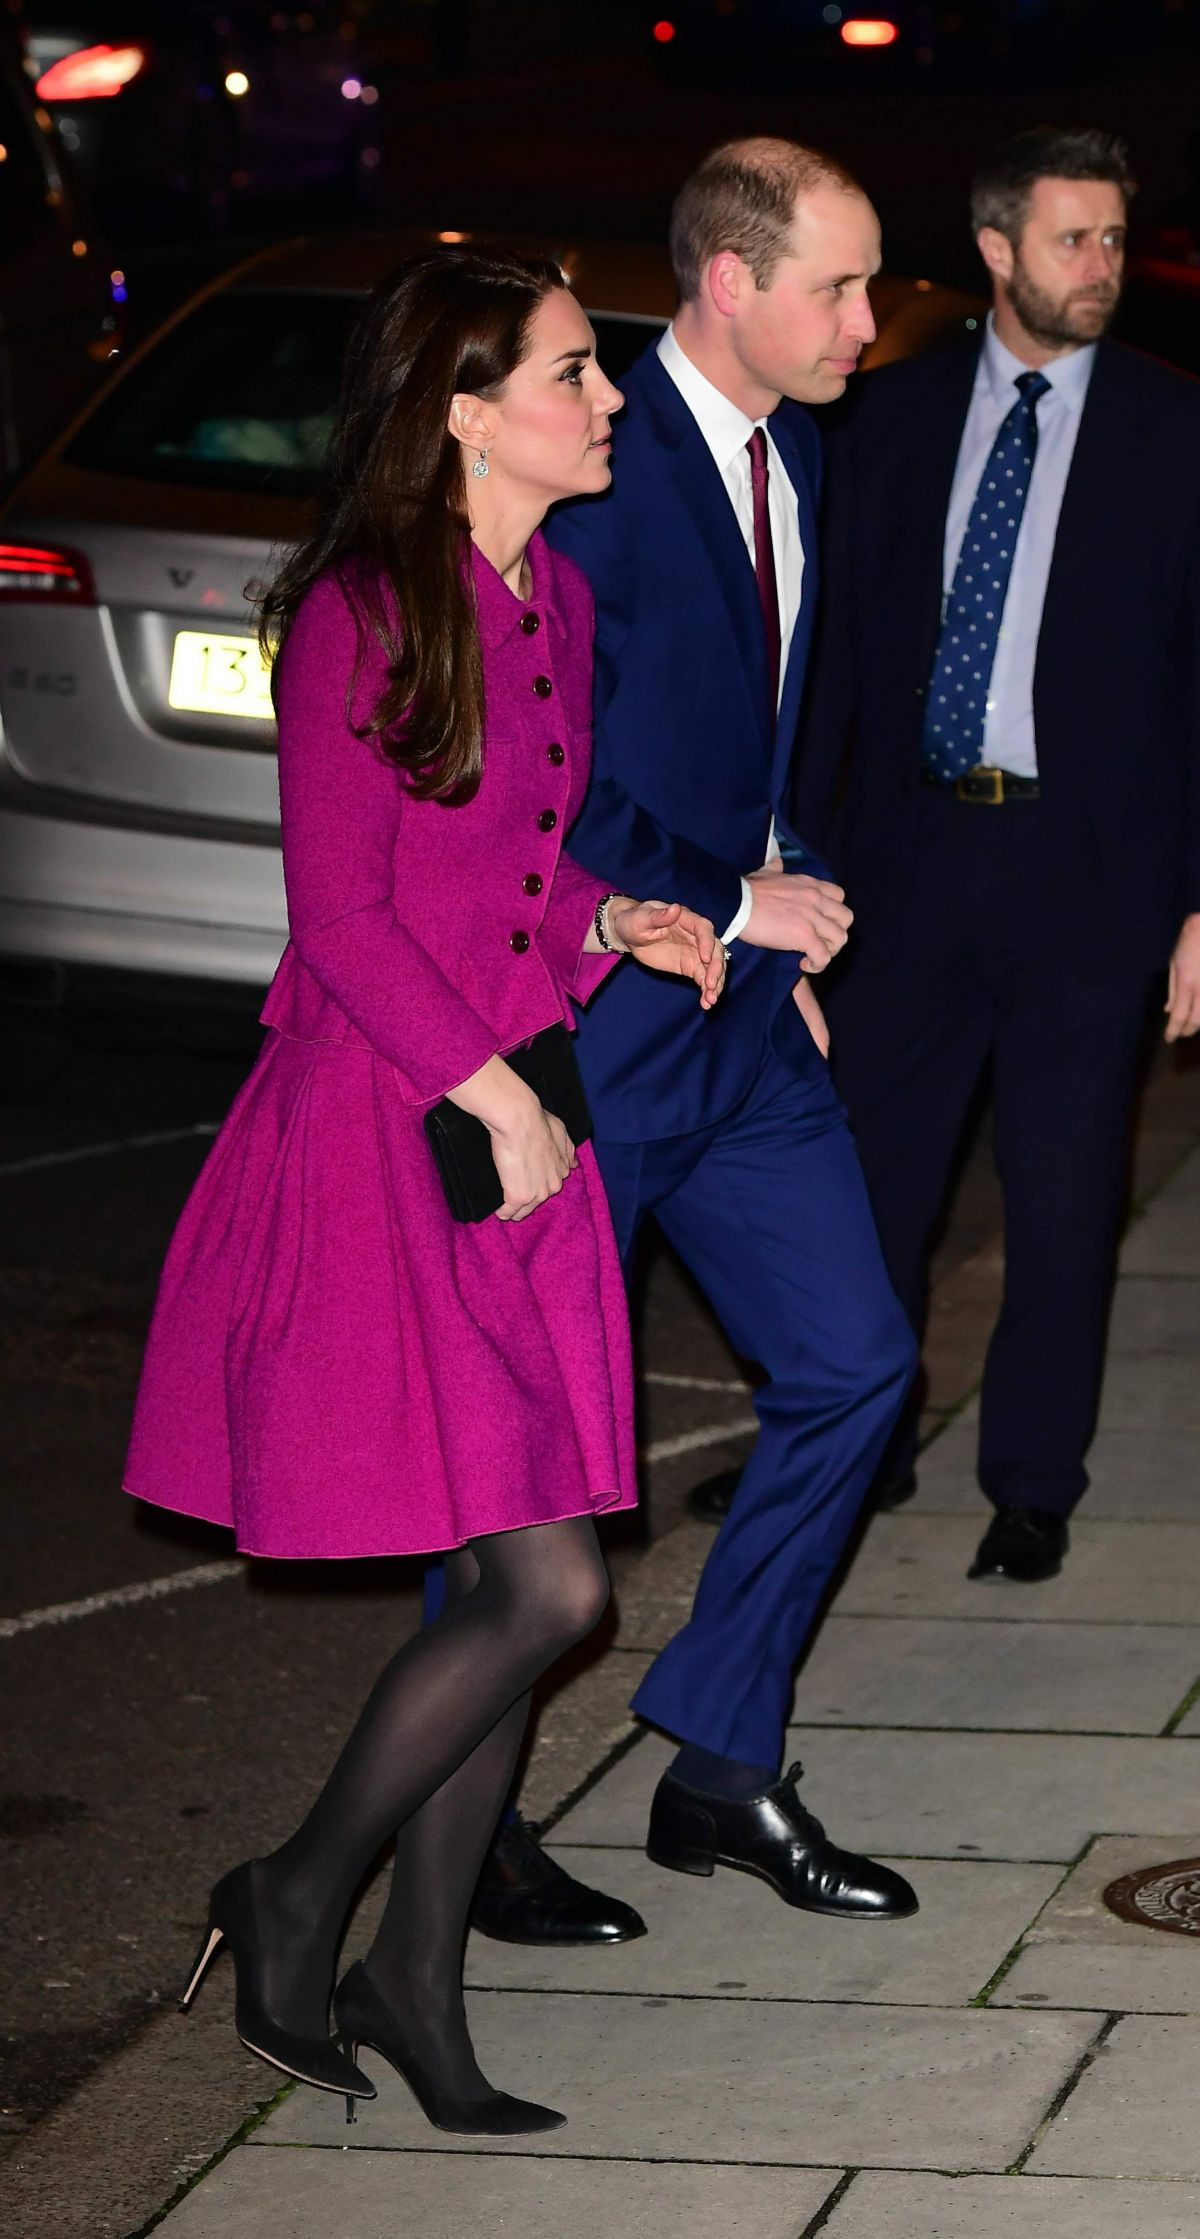 Kate Middleton Arrives At Chandos House In London 02 06